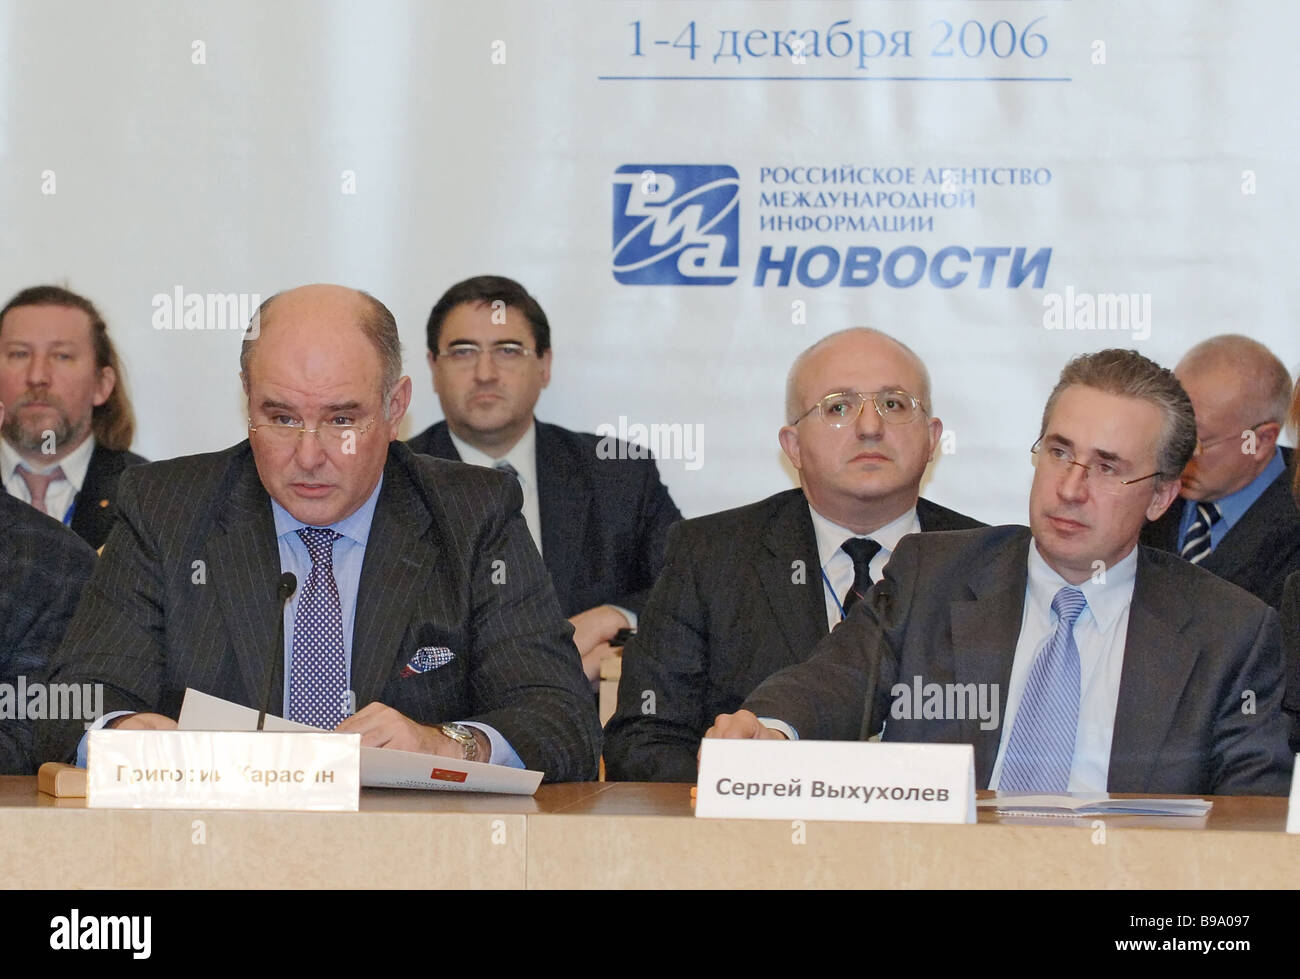 Deputy Foreign Minister Grigory Karasin and RIA Novosti First Deputy Editor in Chief Sergei Vykhukholev foreground - Stock Image